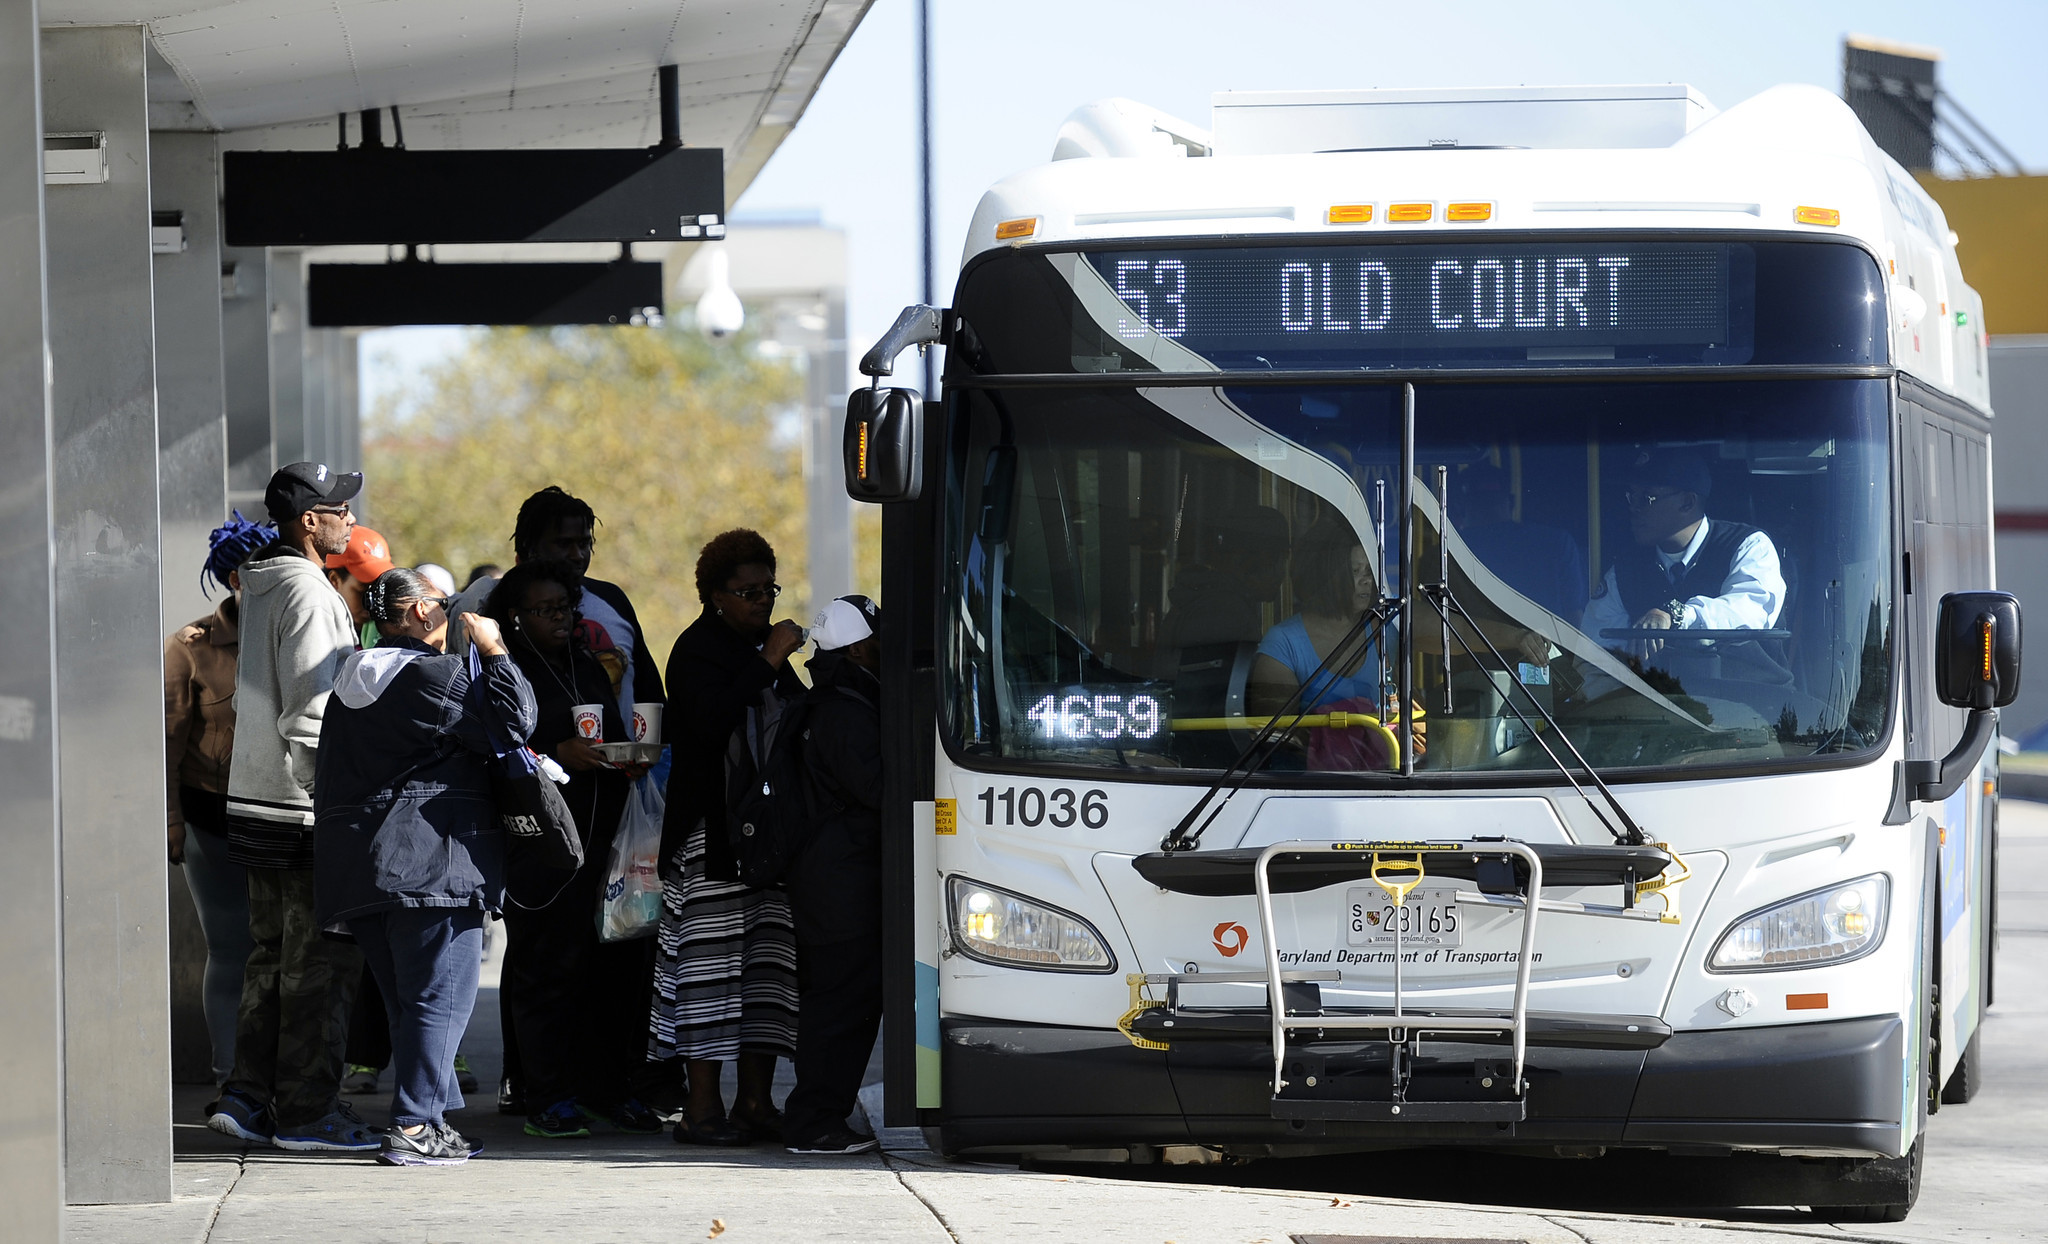 mta launches real-time bus tracking system - baltimore sun